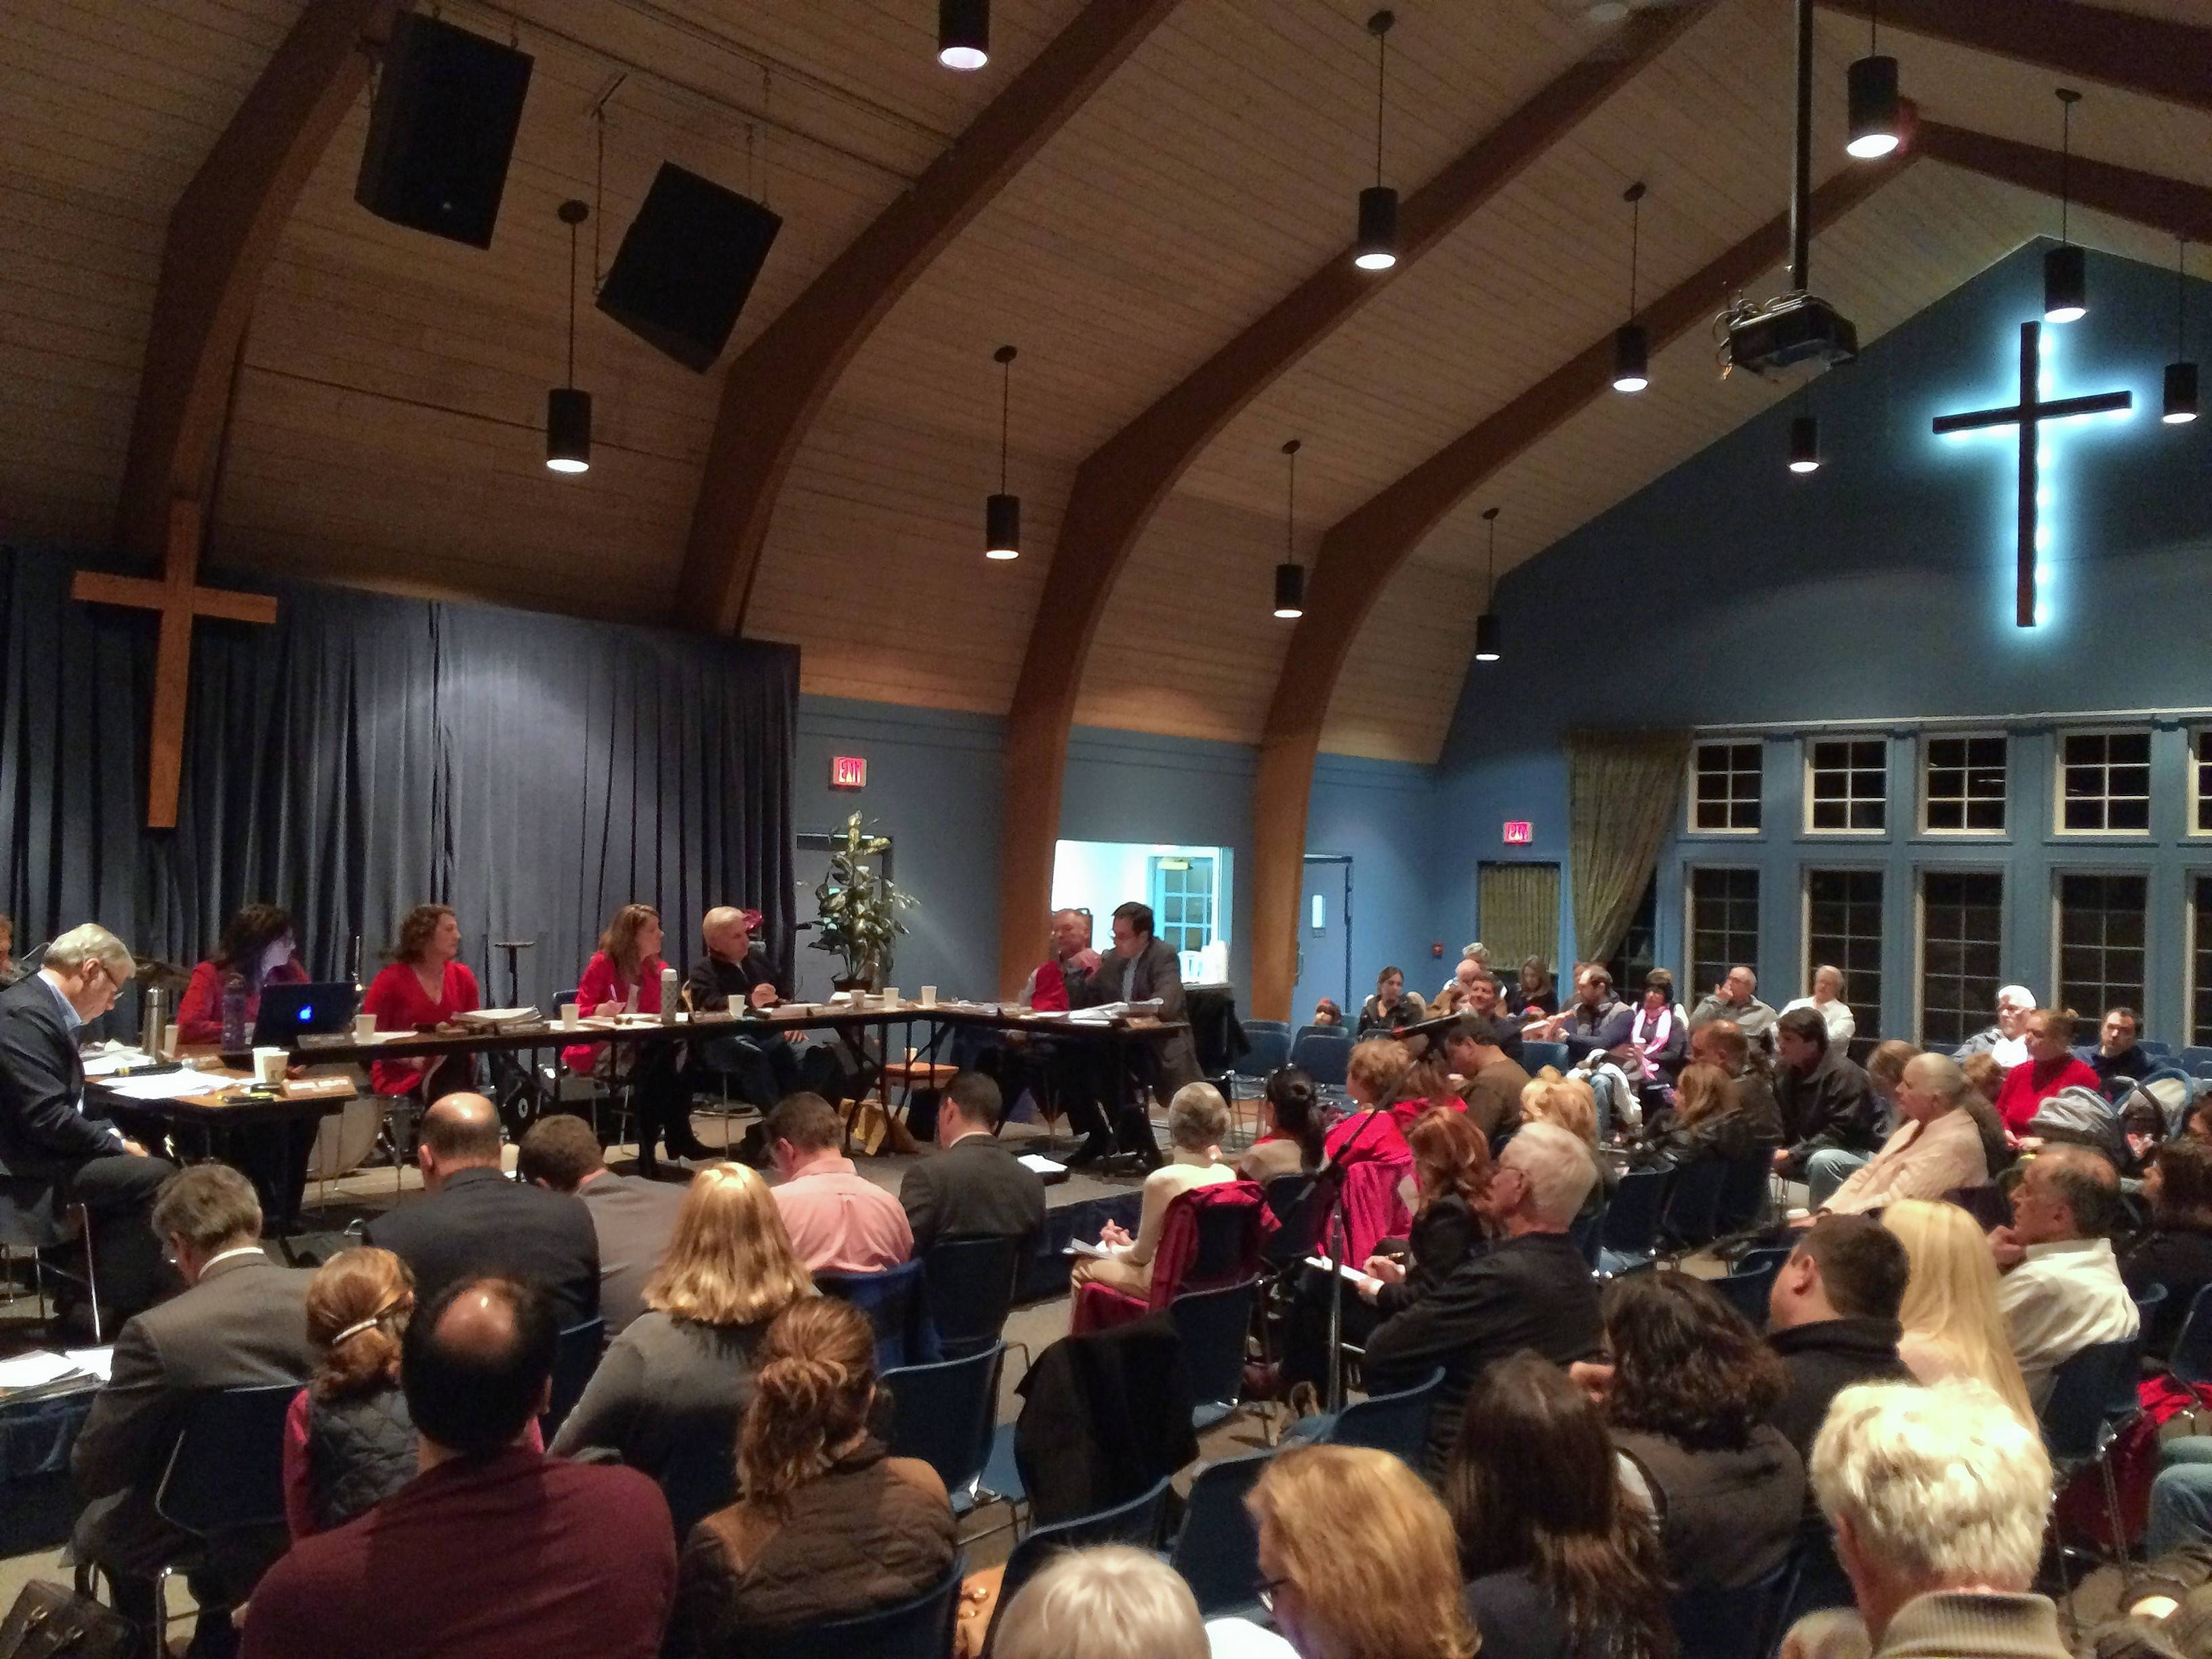 About 150 spectators attended a Long Grove village board meeting that featured discussion on the future of the iconic covered bridge at the downtown entry from the west. The meeting was shifted from village hall to Long Grove Community Church's community house.